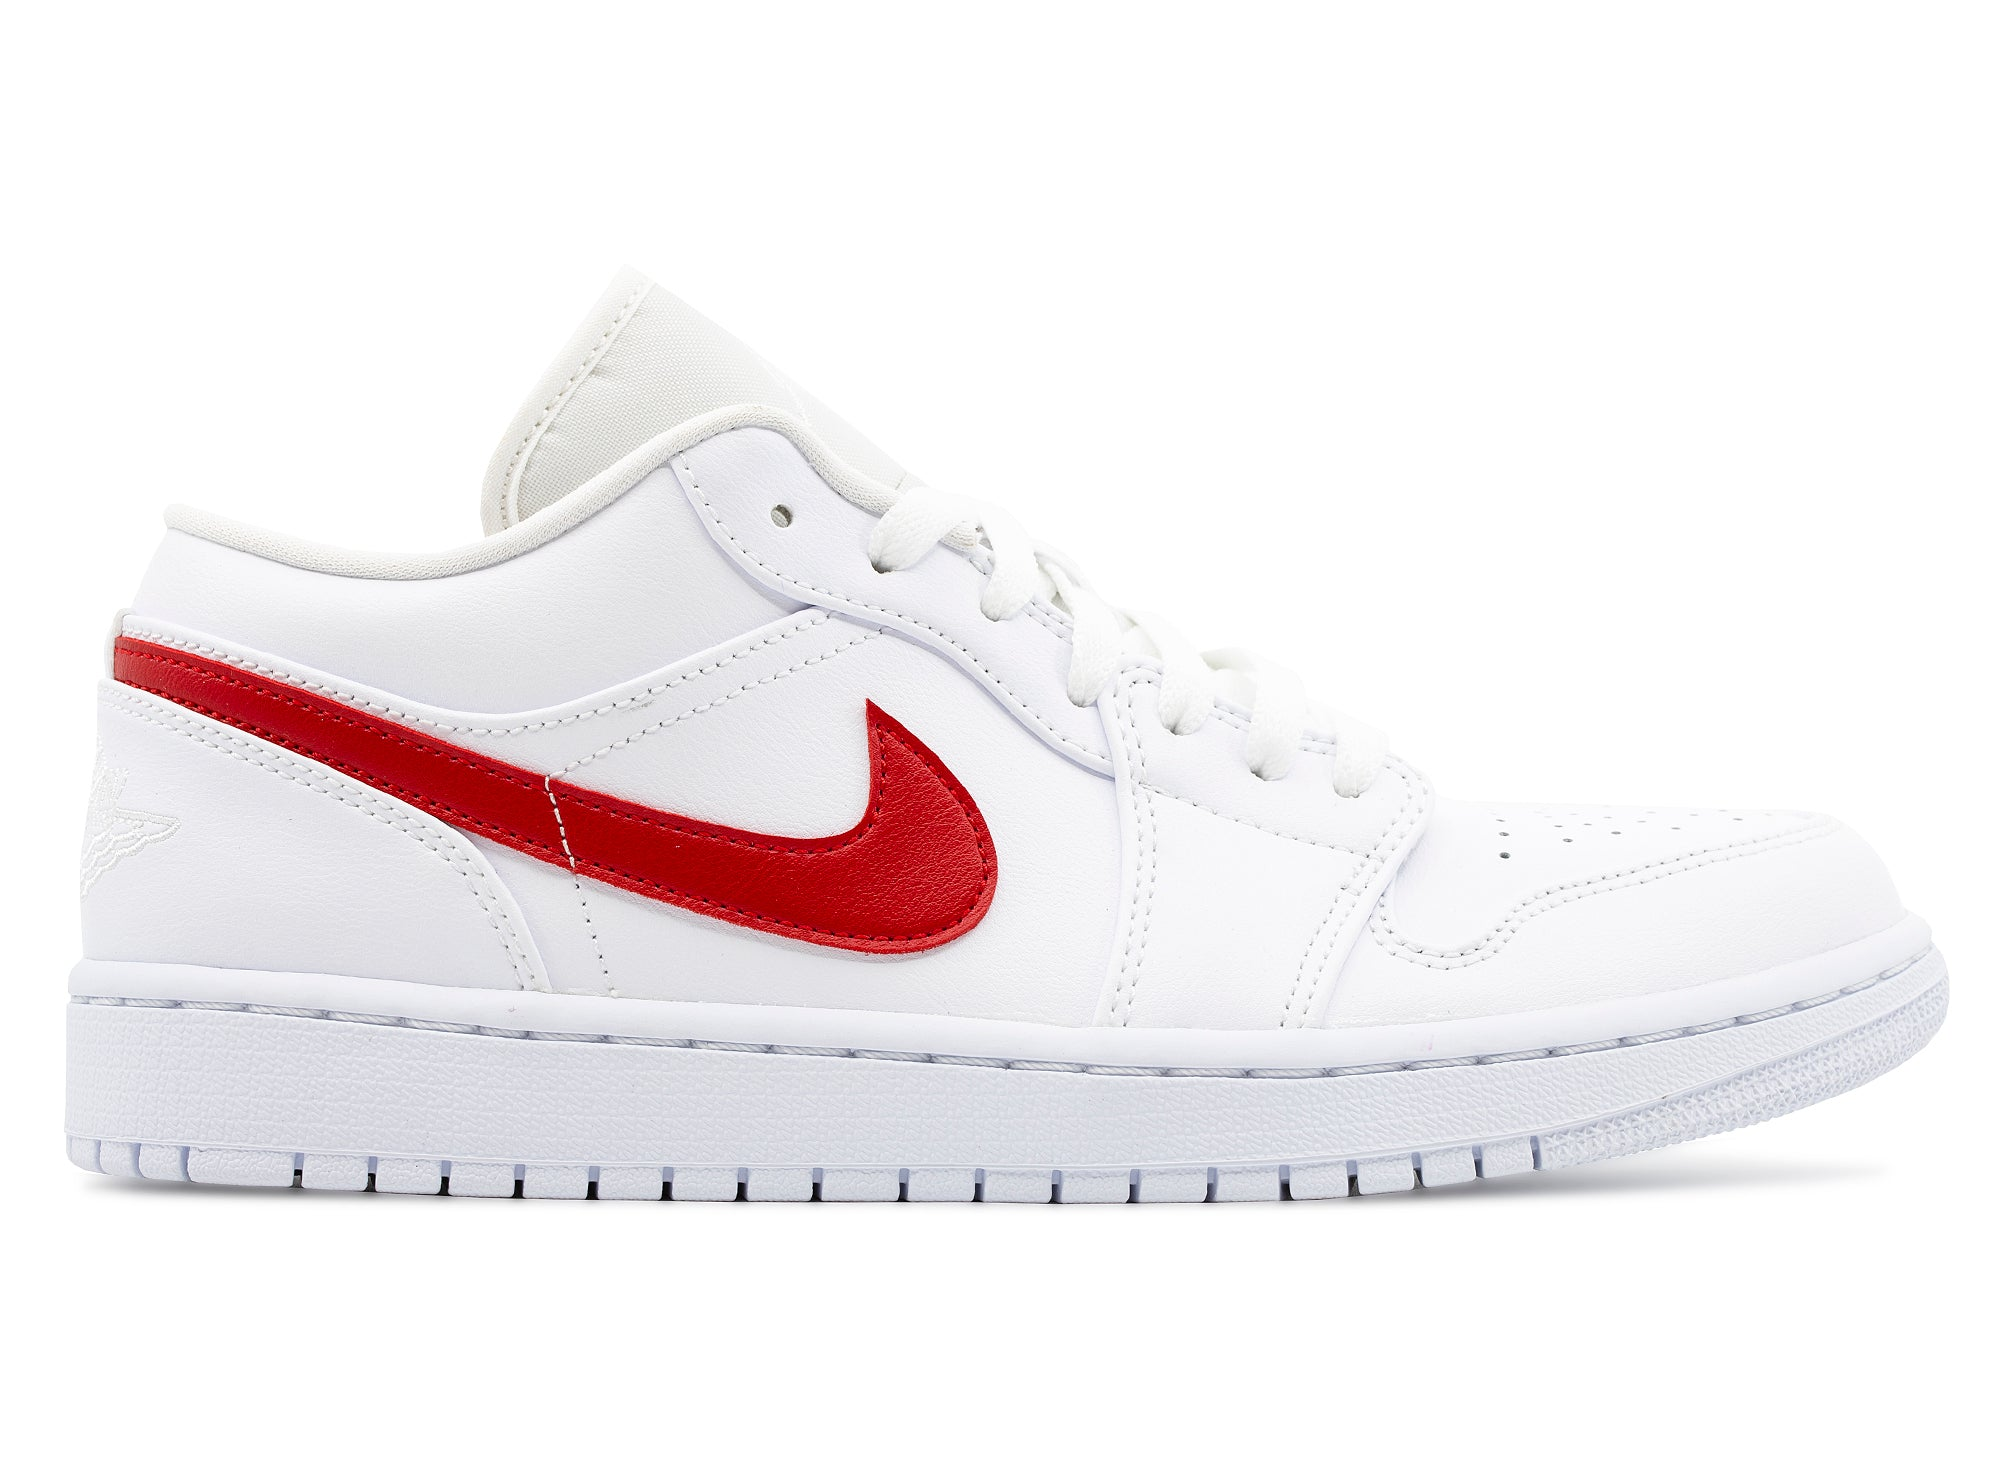 Women's Air Jordan 1 Low xld